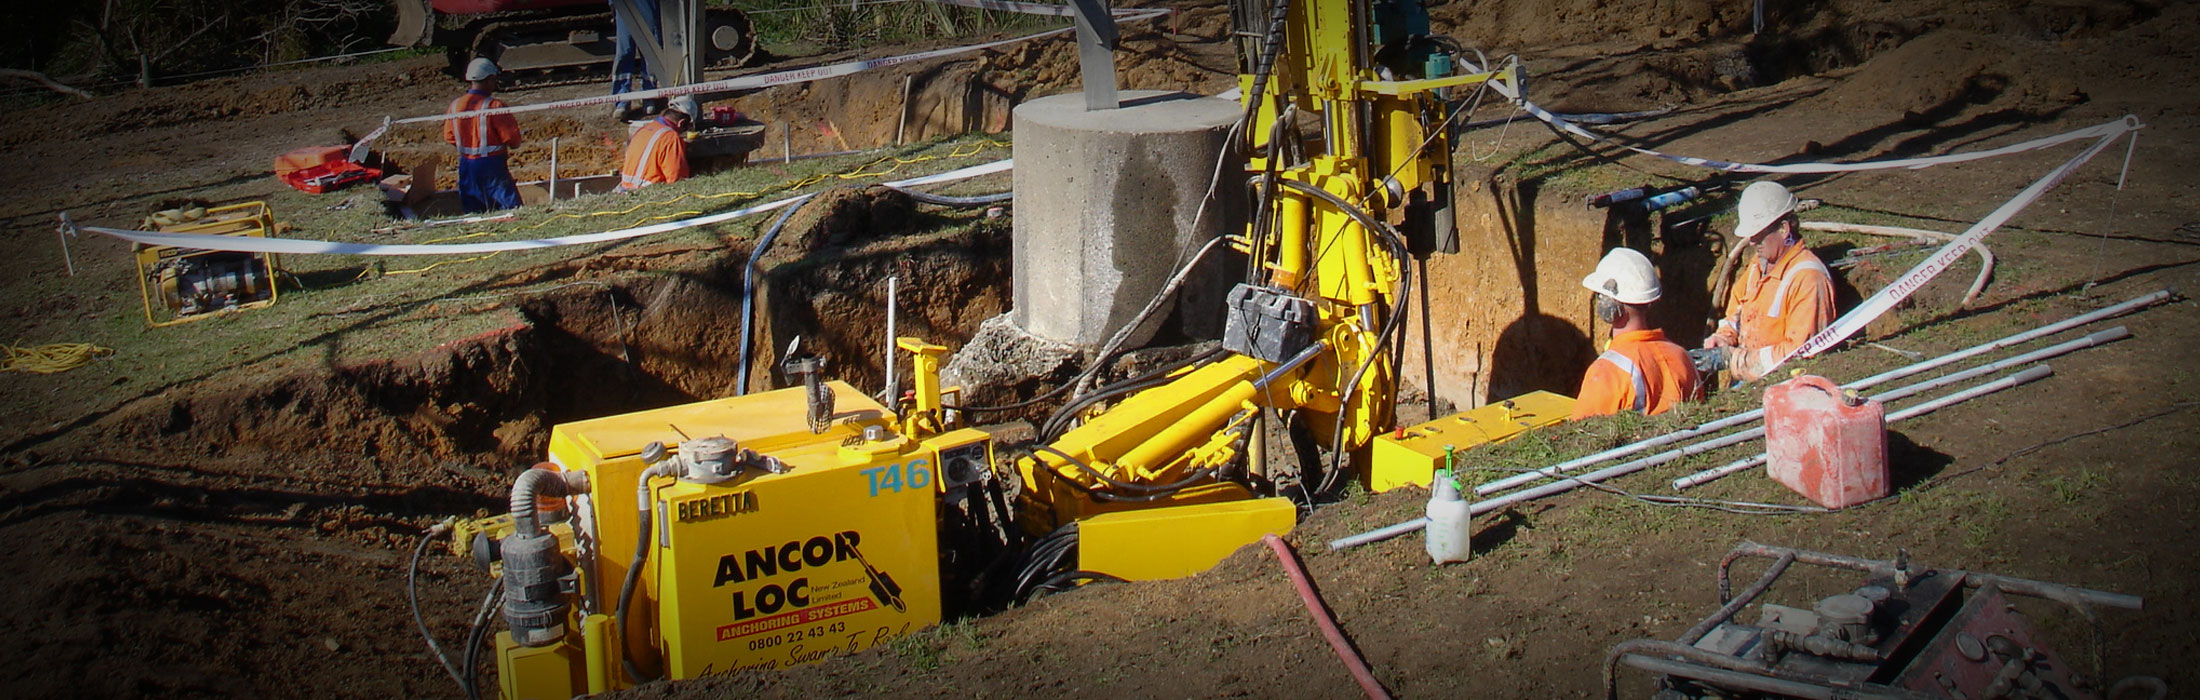 Ohinewai Pylon Foundation Strengthening 03 Ancor Loc Nz